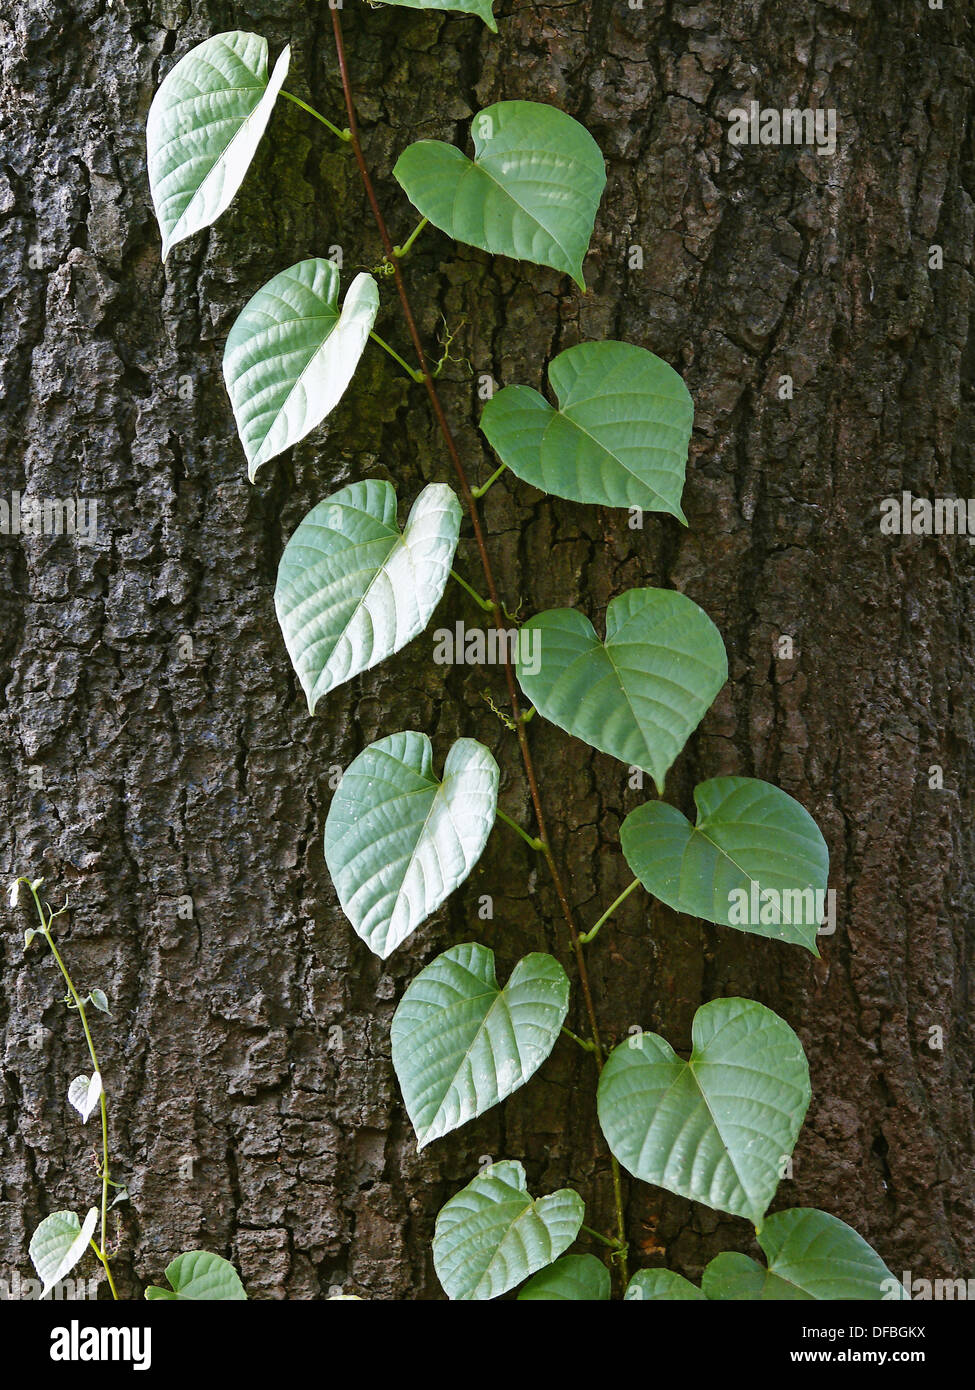 a creeping plant with heart shaped leaves ratnagiri maharashtra stock photo 61105518 alamy. Black Bedroom Furniture Sets. Home Design Ideas